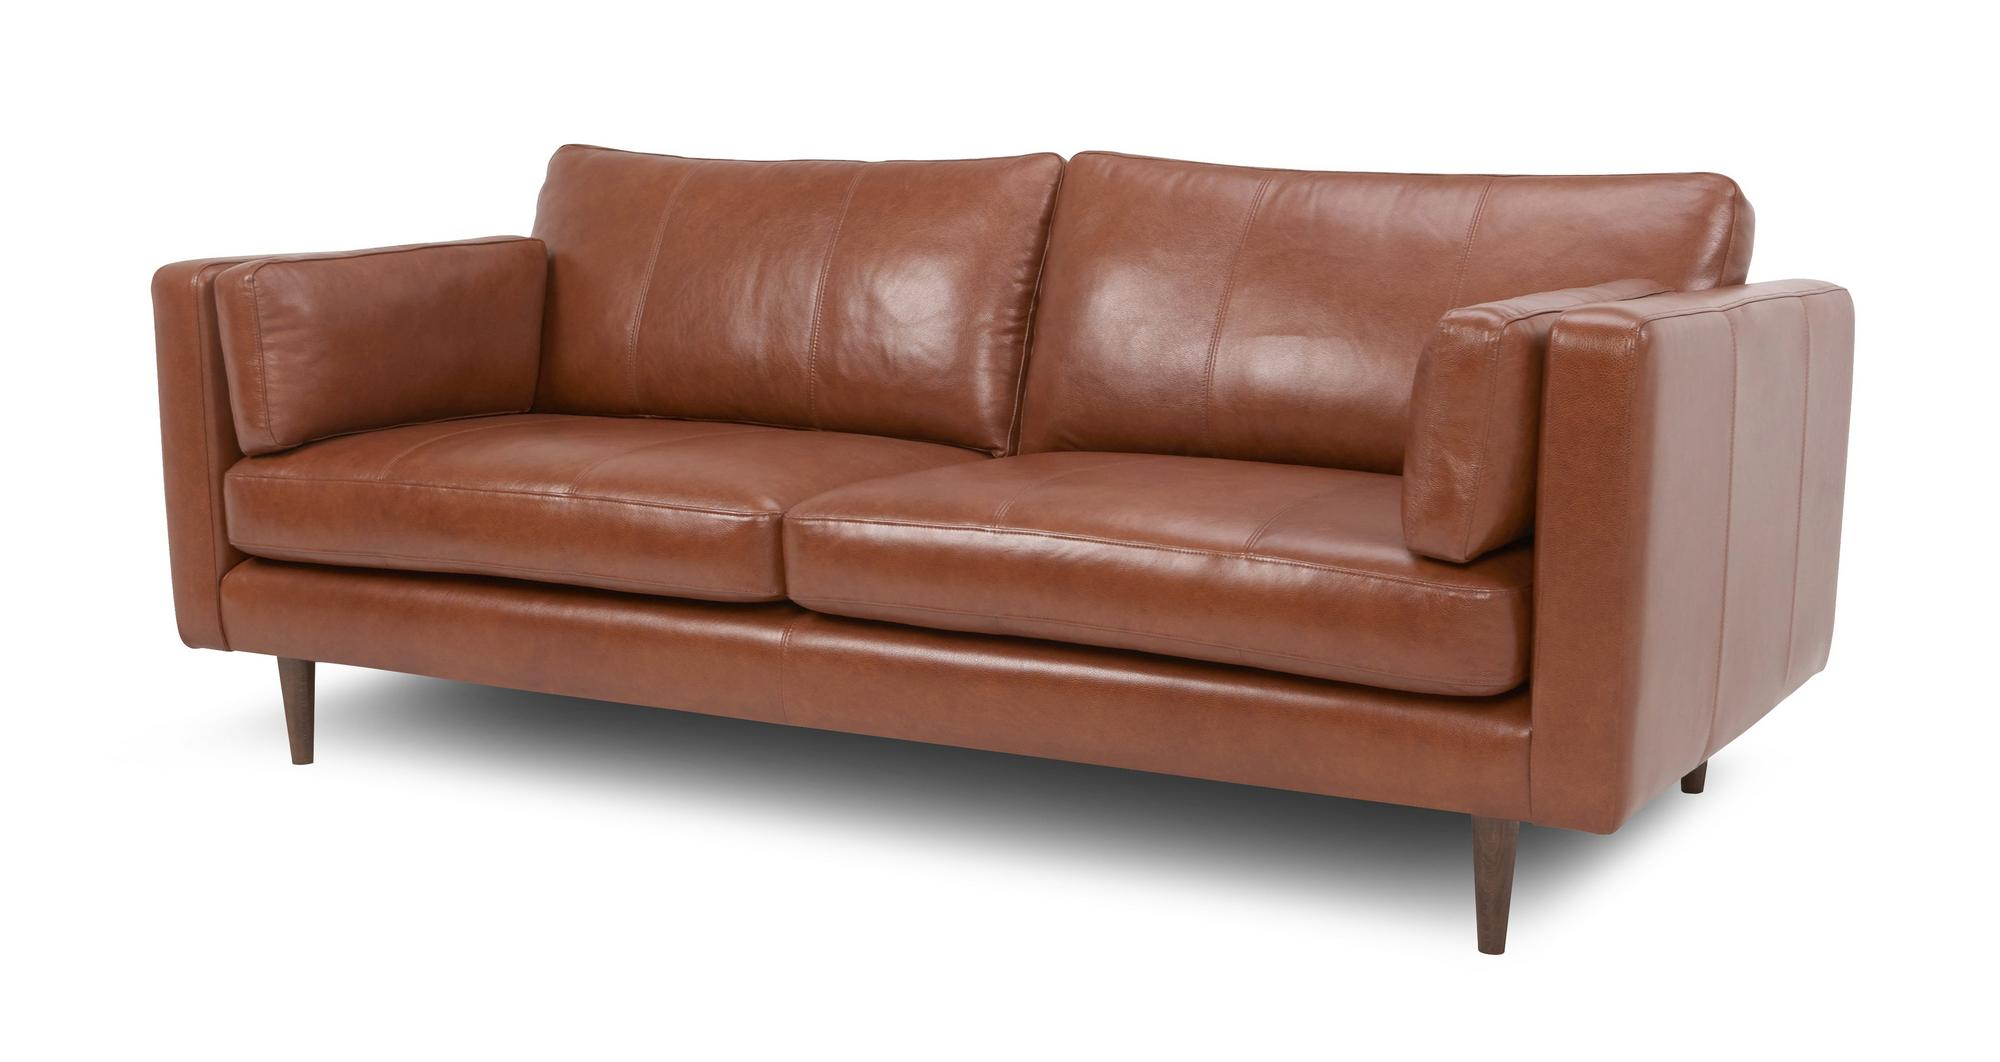 Dfs marl tan 100 leather large sofa small sofa cuddler for Small sectional sofa with cuddler